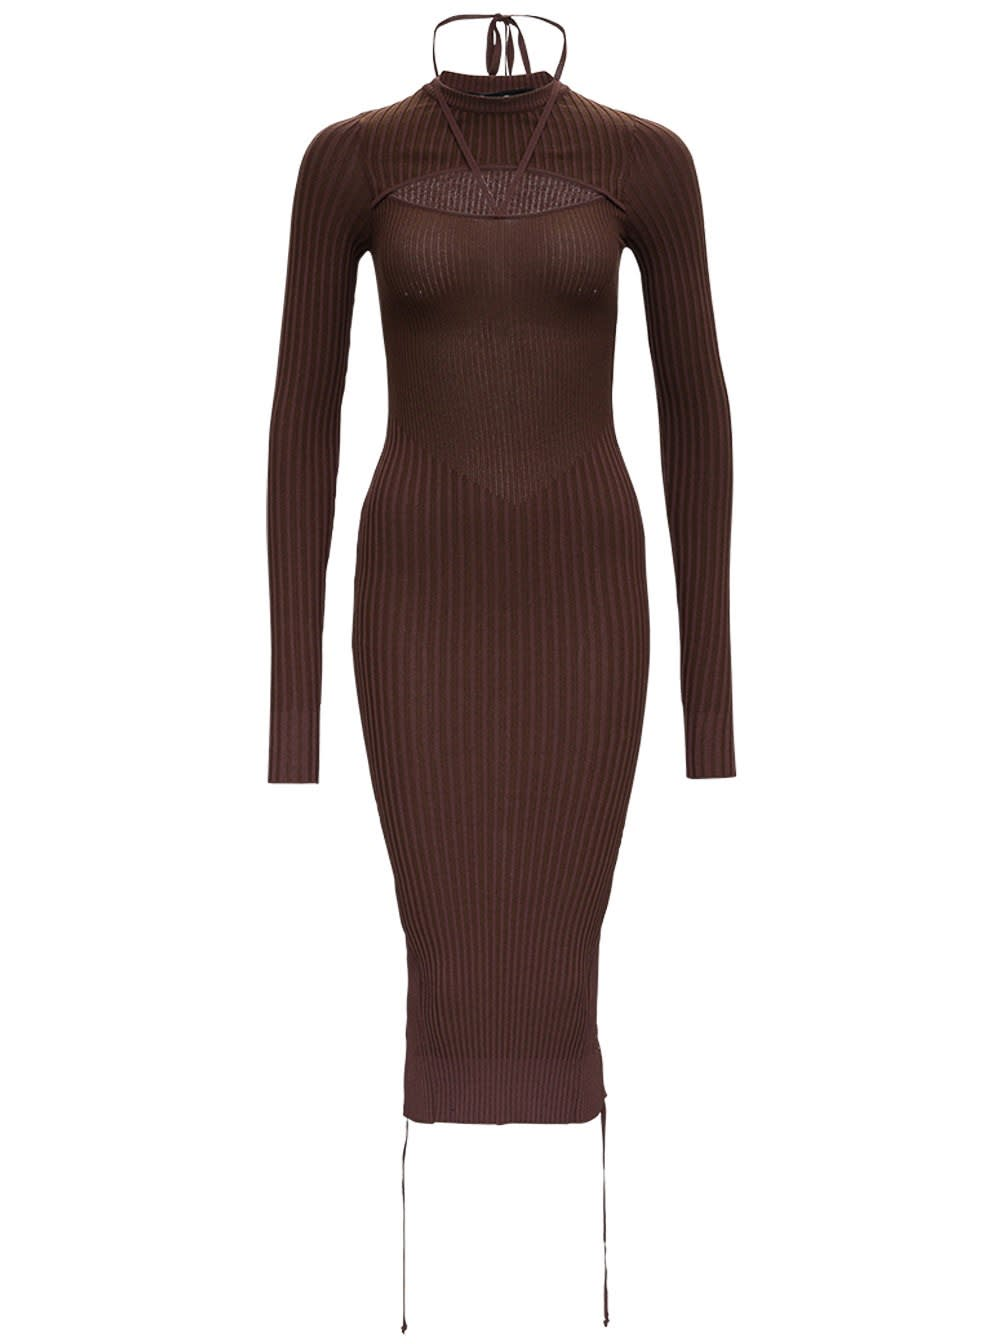 Cut-out Dress In Brown Ribbed Knit